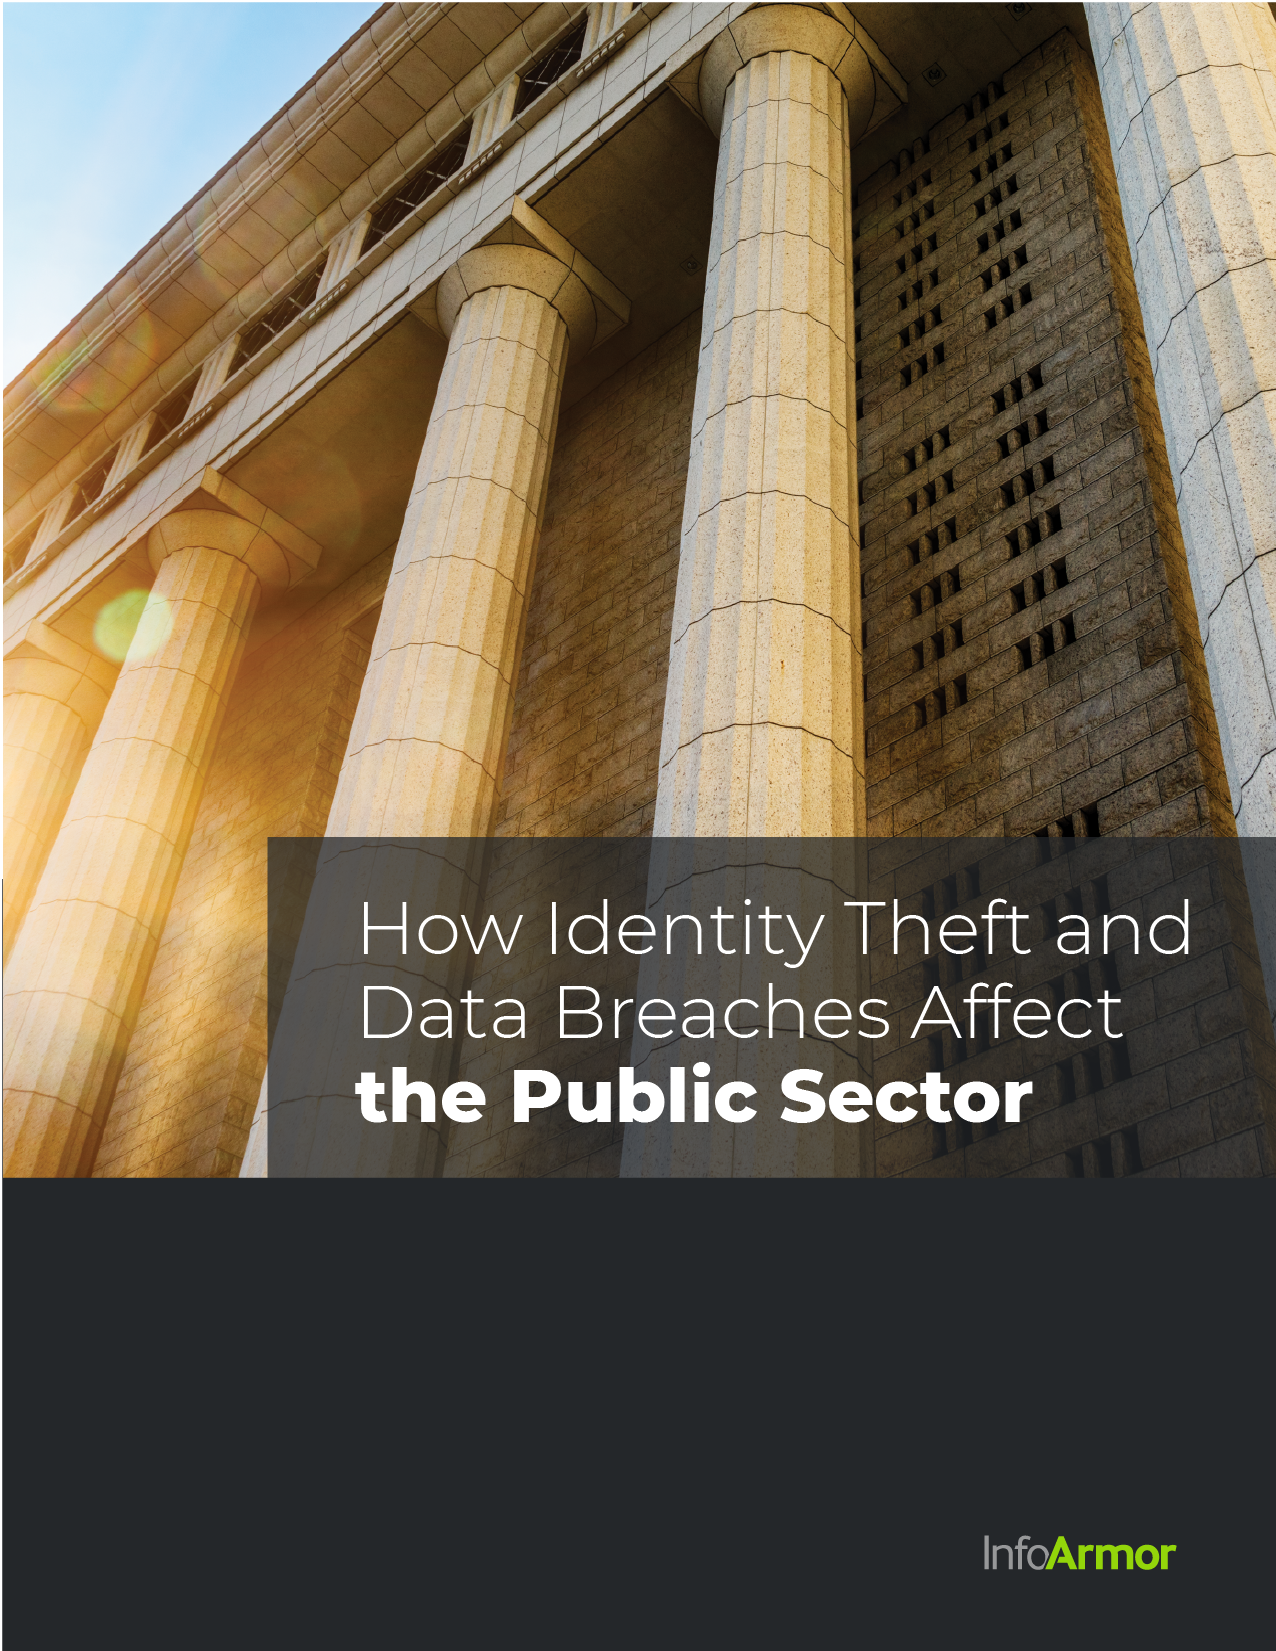 How Identity Theft and Data Breaches Affect the Public Sector thumbnail.png